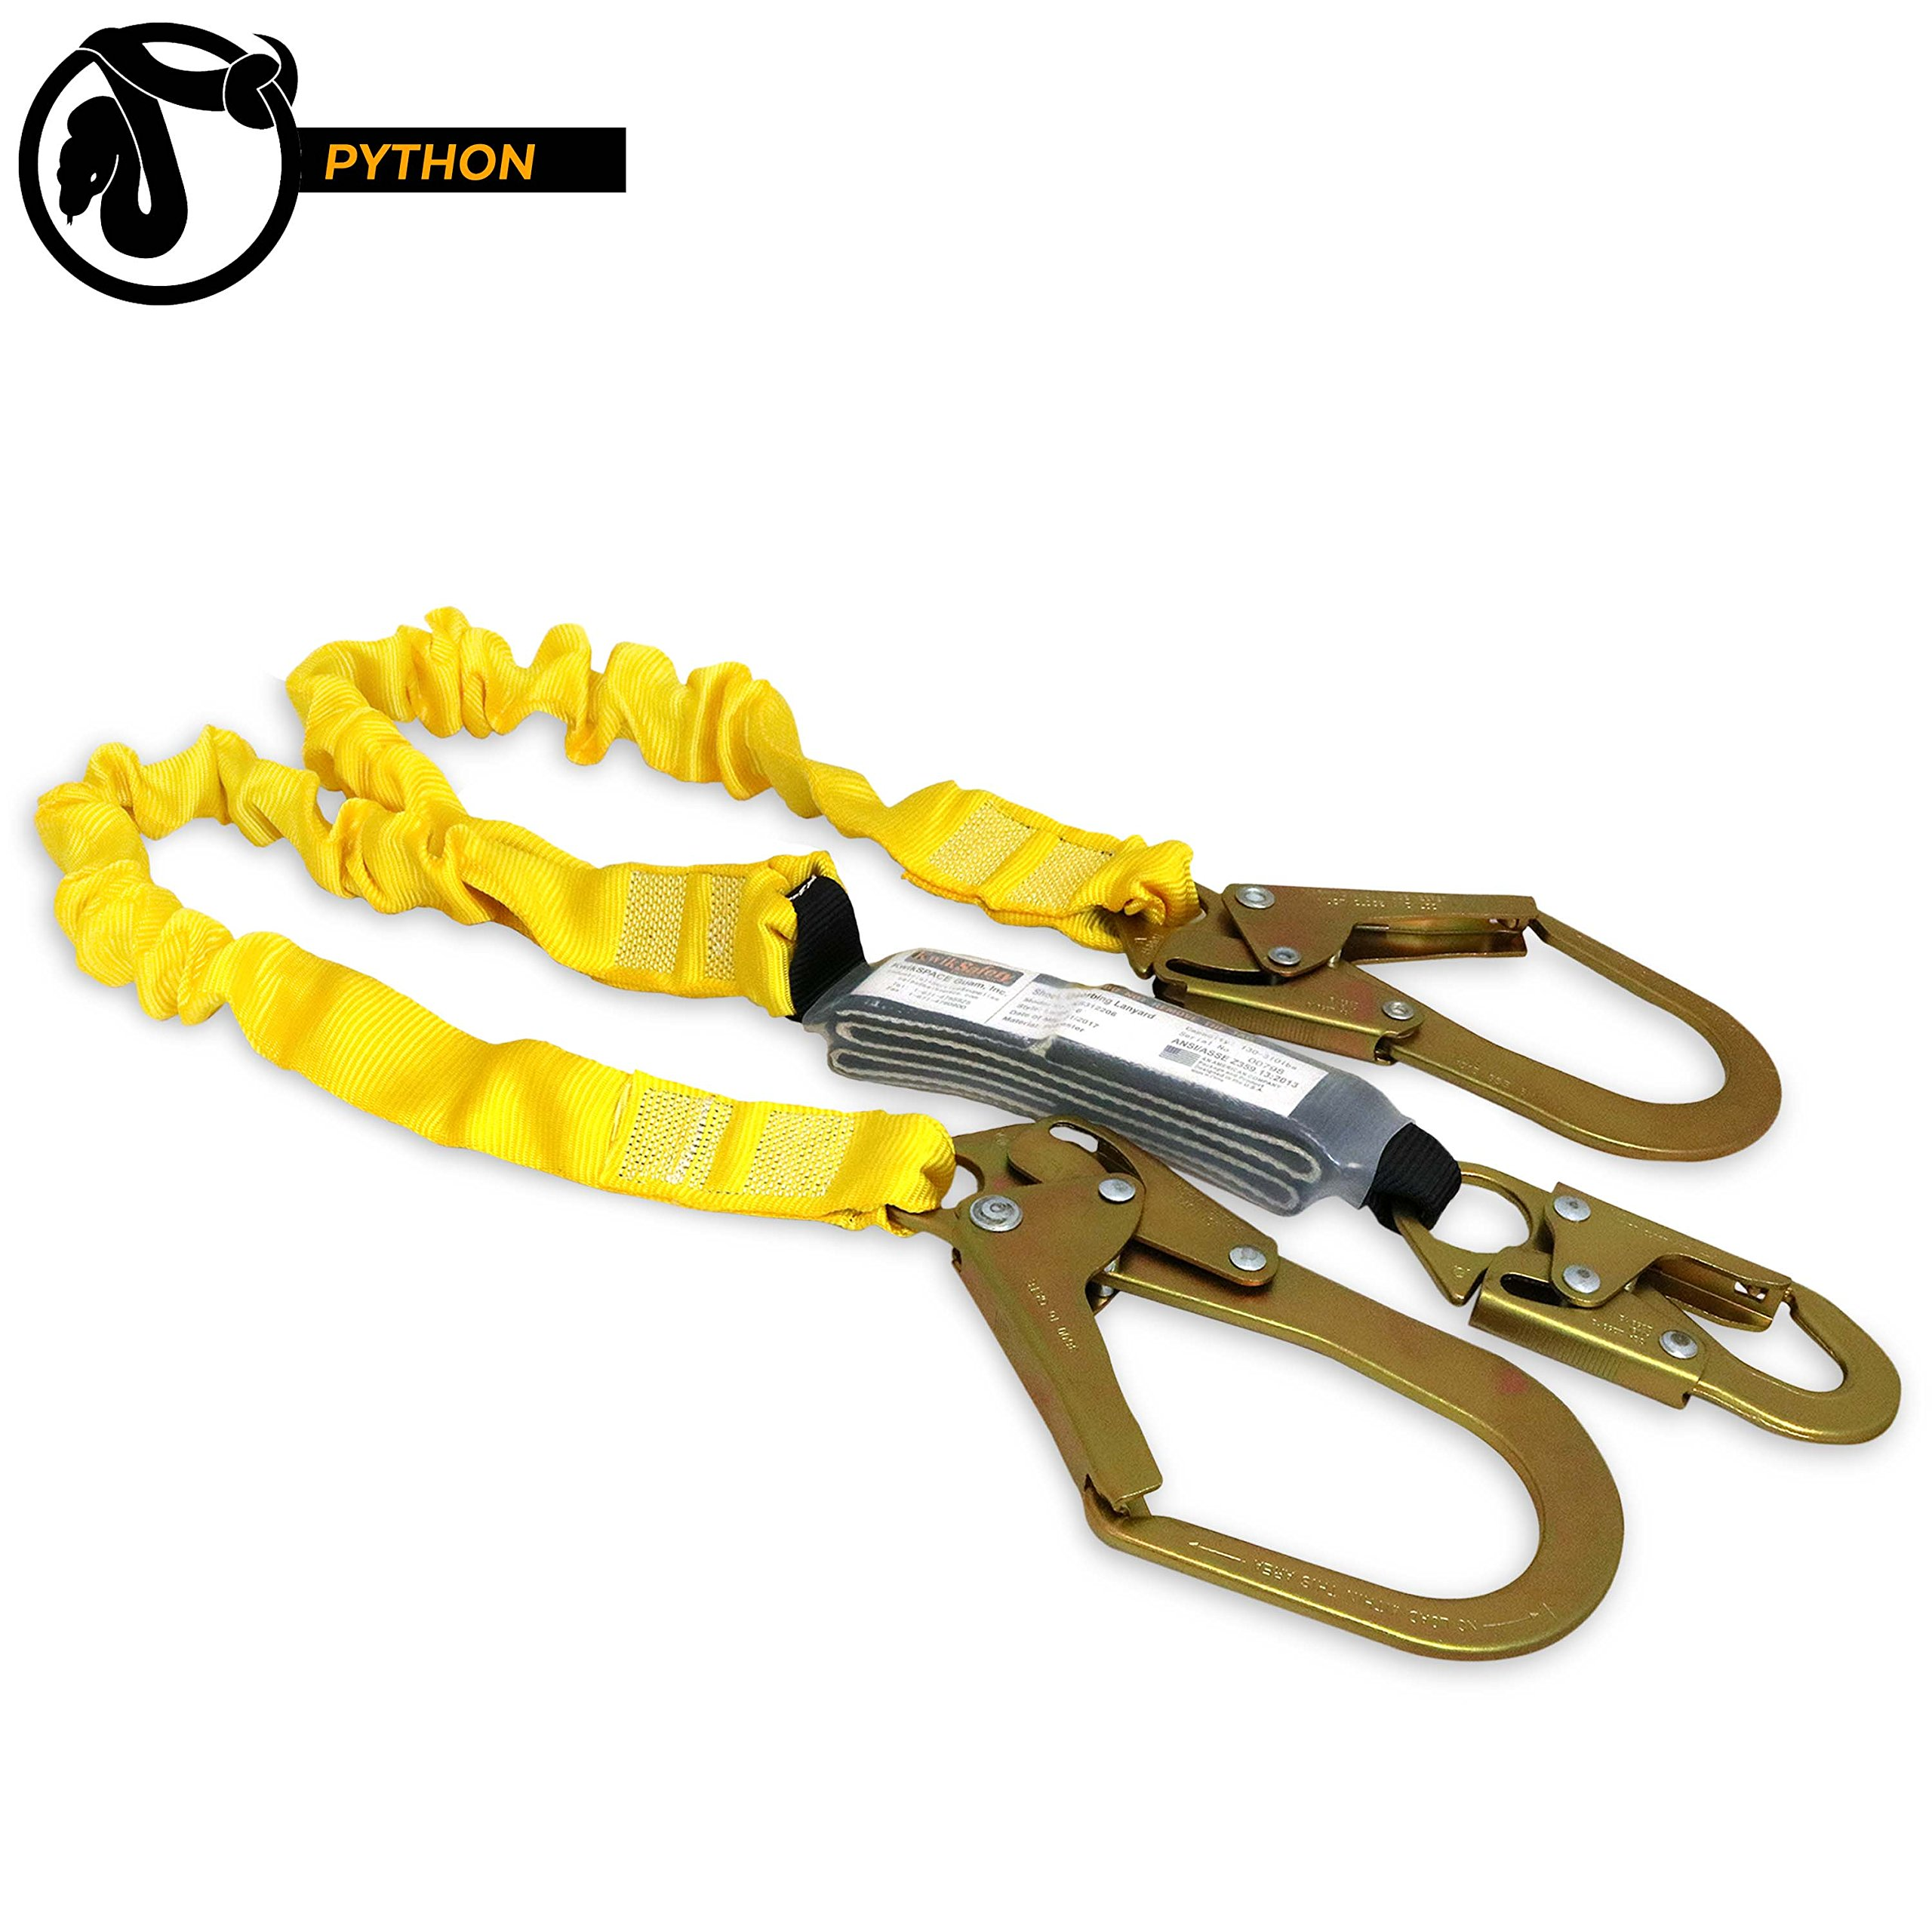 KwikSafety PYTHON   Double Leg 6ft Tubular Stretch Safety Lanyard   OSHA Approved ANSI Compliant Fall Protection   EXTERNAL Shock Absorber   Construction Arborist Roofing   Snap & Rebar Hook Connector by KwikSafety (Image #1)